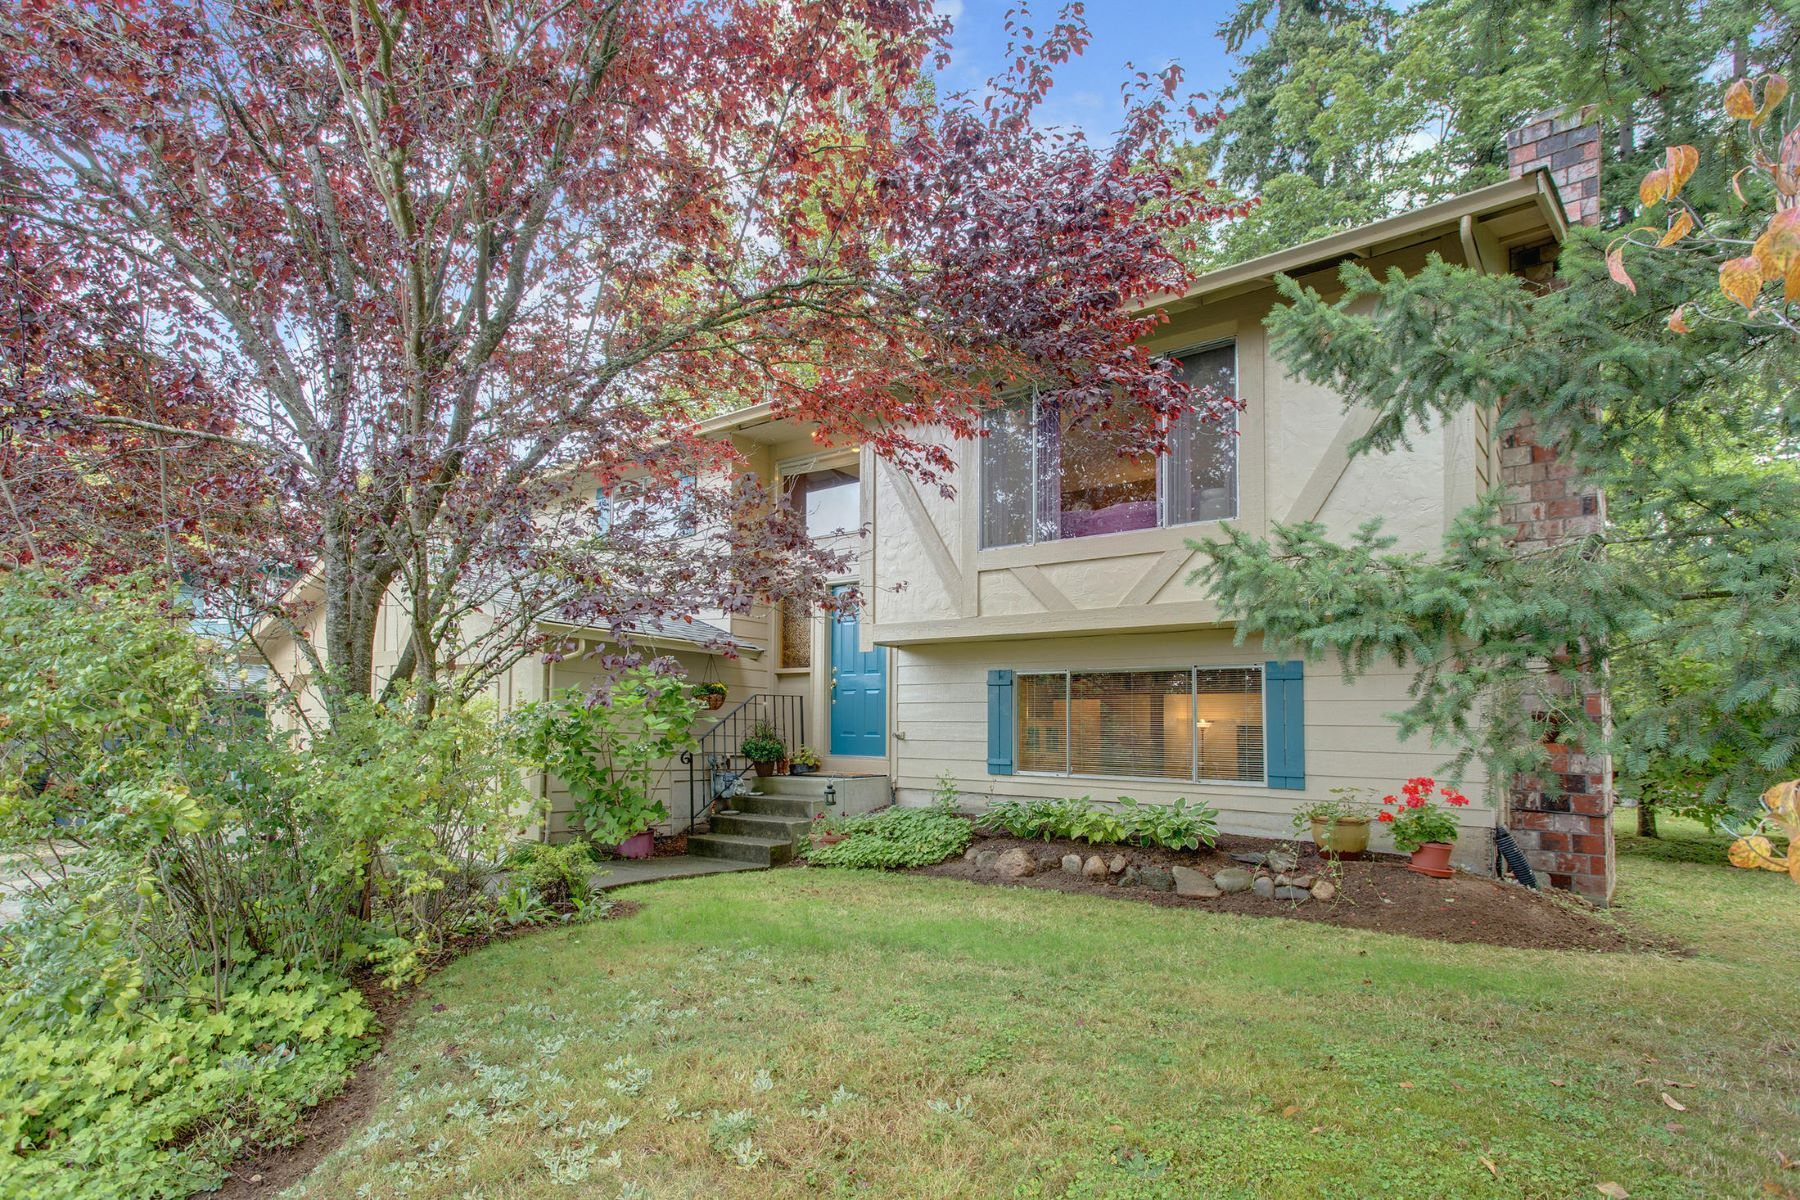 Single Family Homes for Sale at Rare Find in Mountlake Terrace 4000 228th Pl SW Mountlake Terrace, Washington 98043 United States